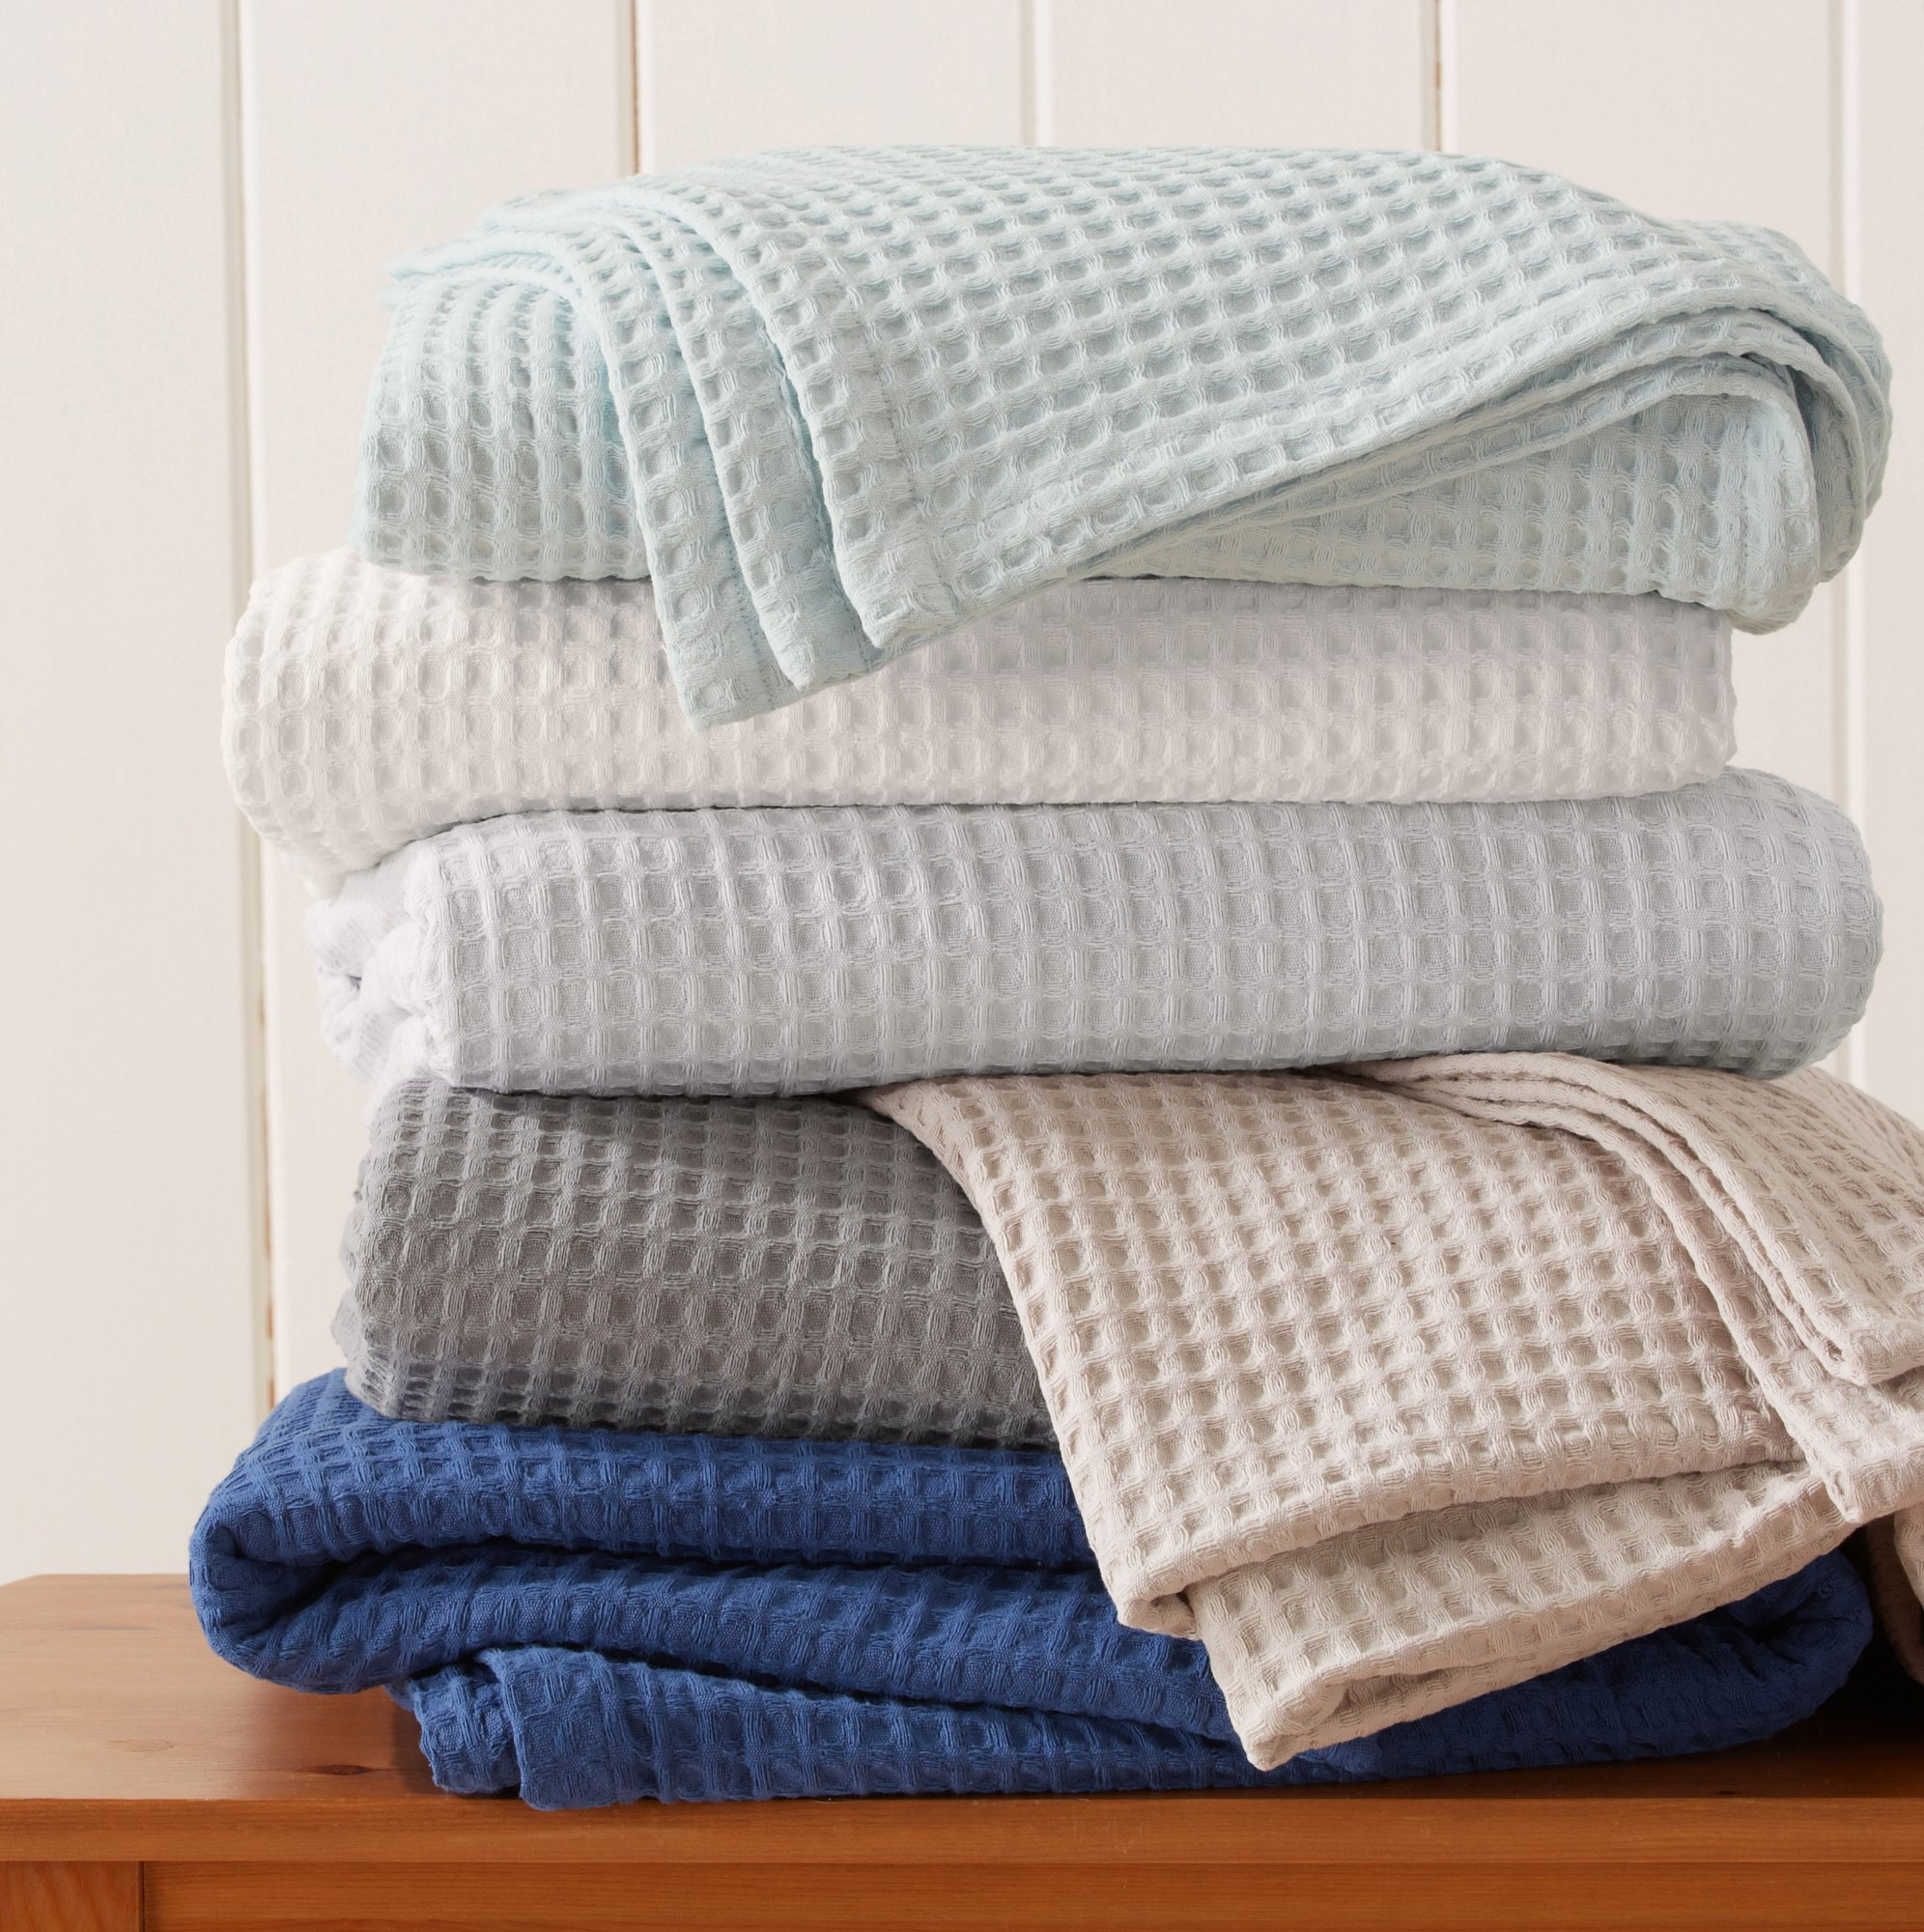 Great Bay Home 100% Cotton Waffle Weave Premium Blanket. Lightweight and Soft, Perfect for Layering. Havana Collection (Full/Queen, White)